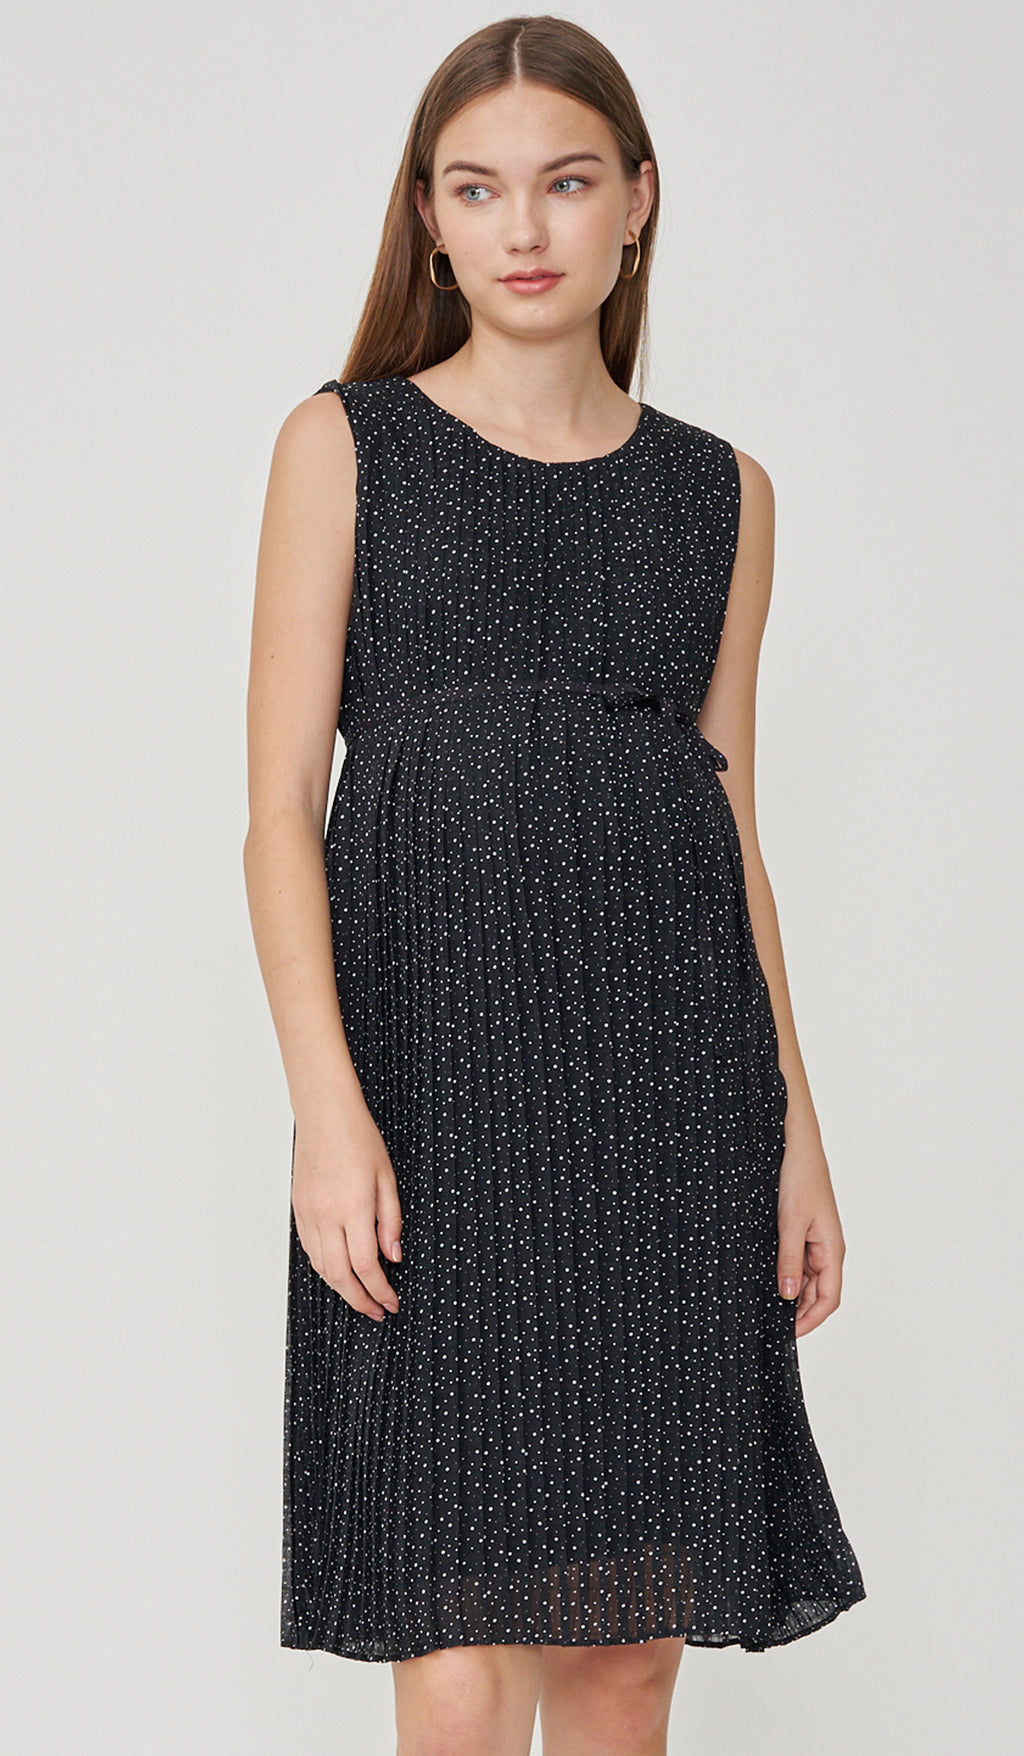 LAILA POLKADOT PLEATS NURSING DRESS BLACK